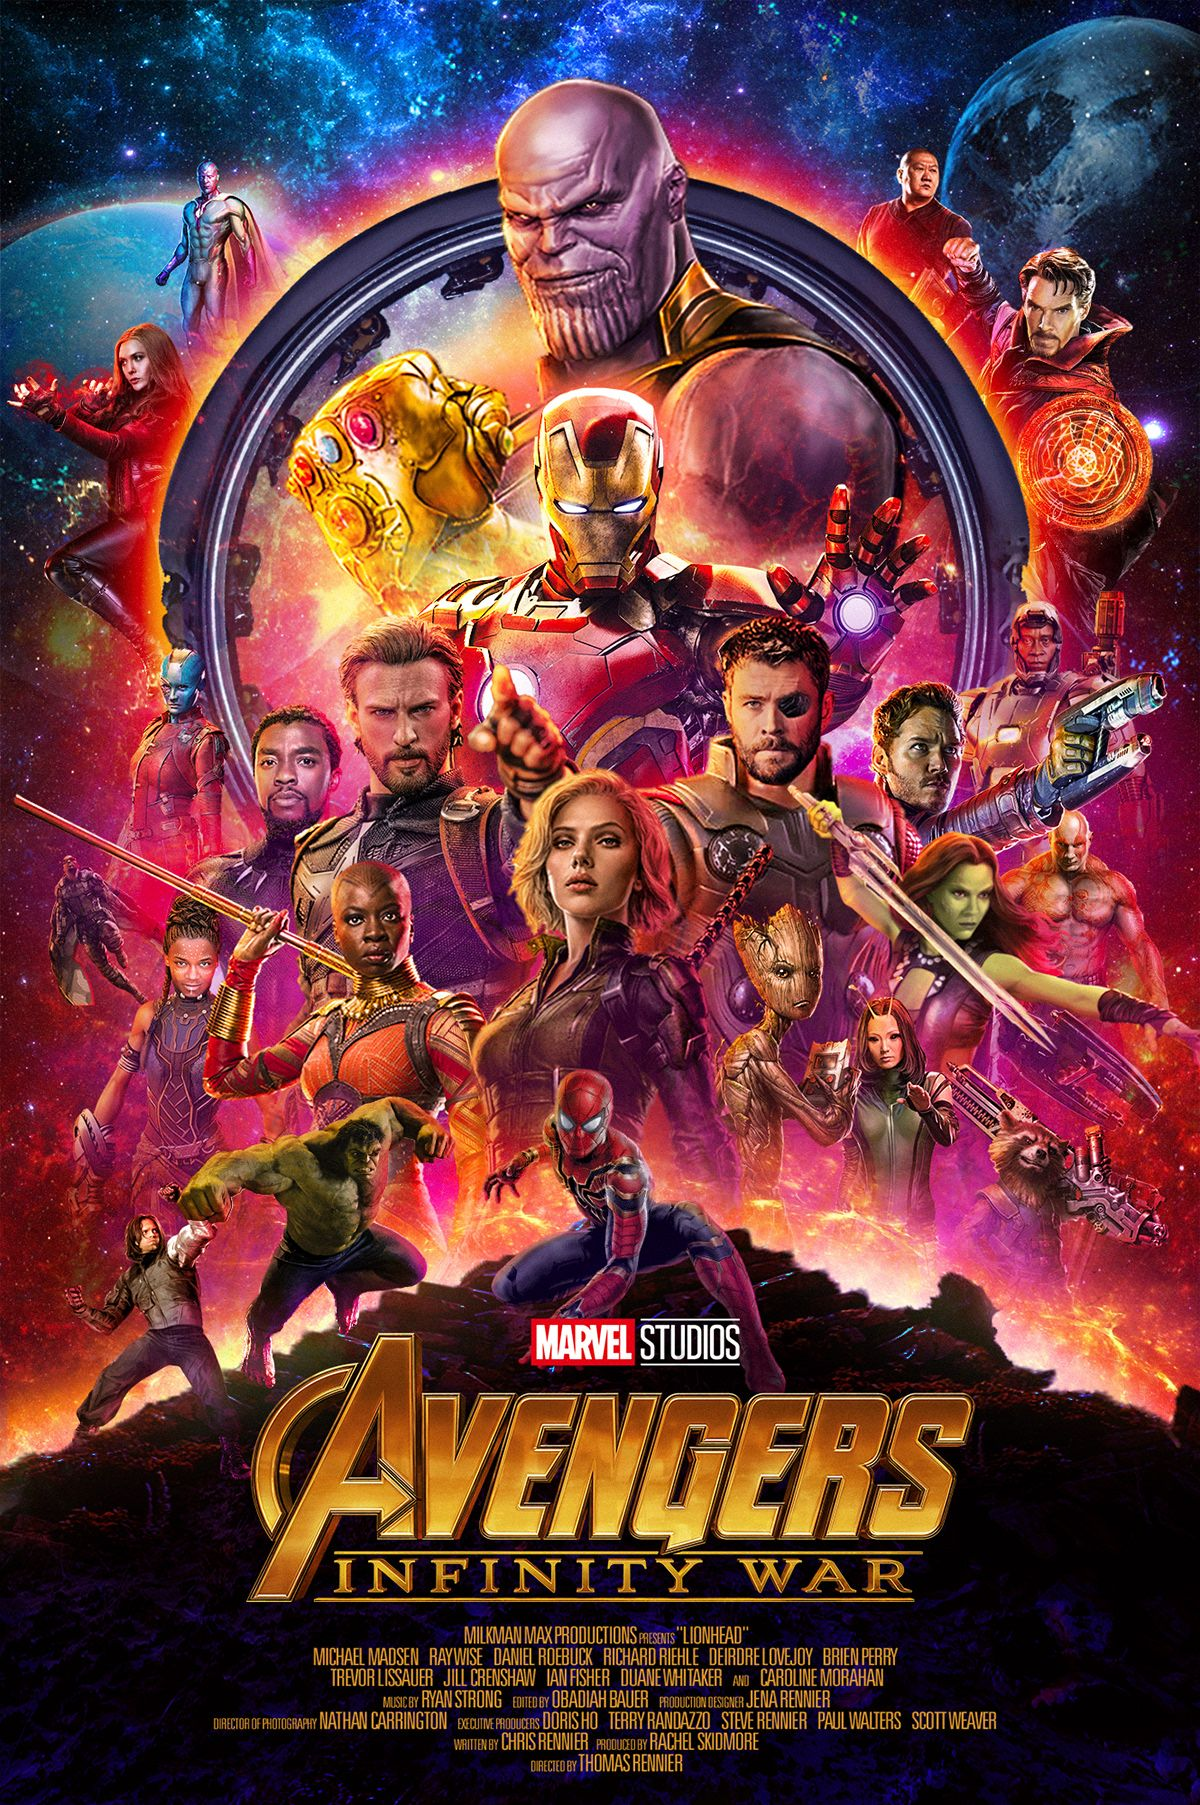 Avengers Infinity War Official Poster Recreated On Behance Avengers Poster Marvel Avengers Movies Marvel Posters